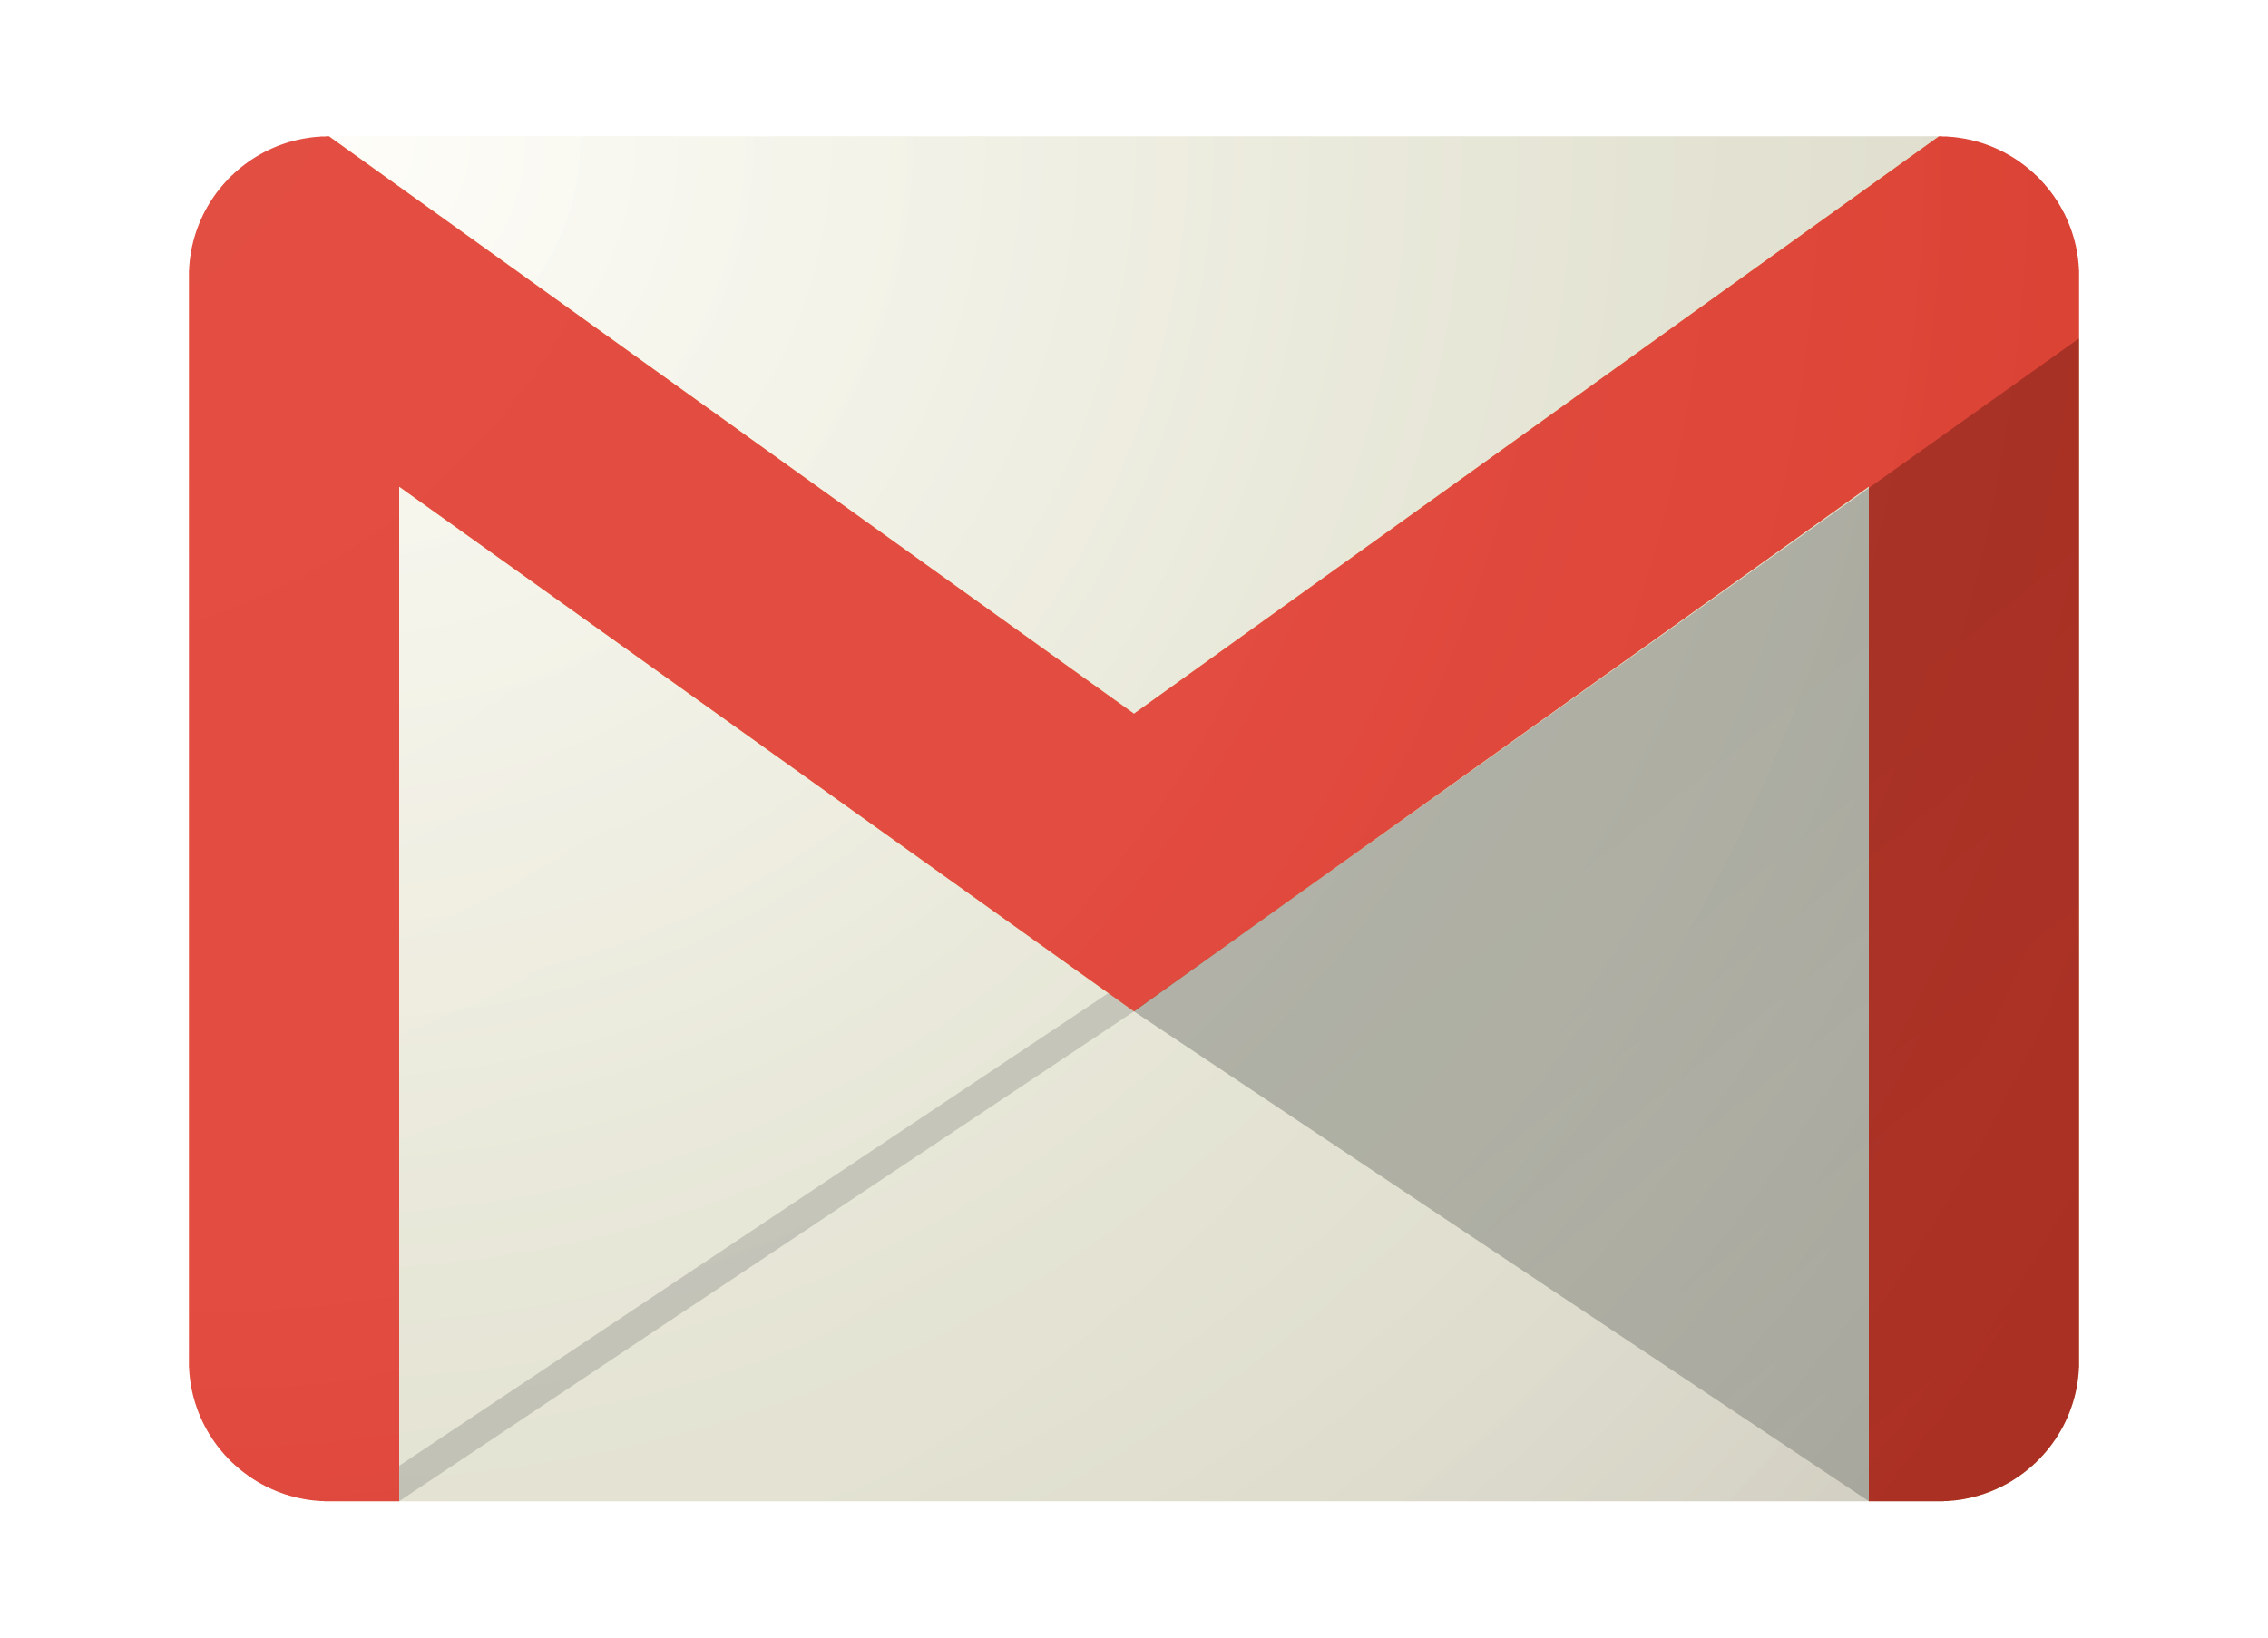 gmail, email logo png